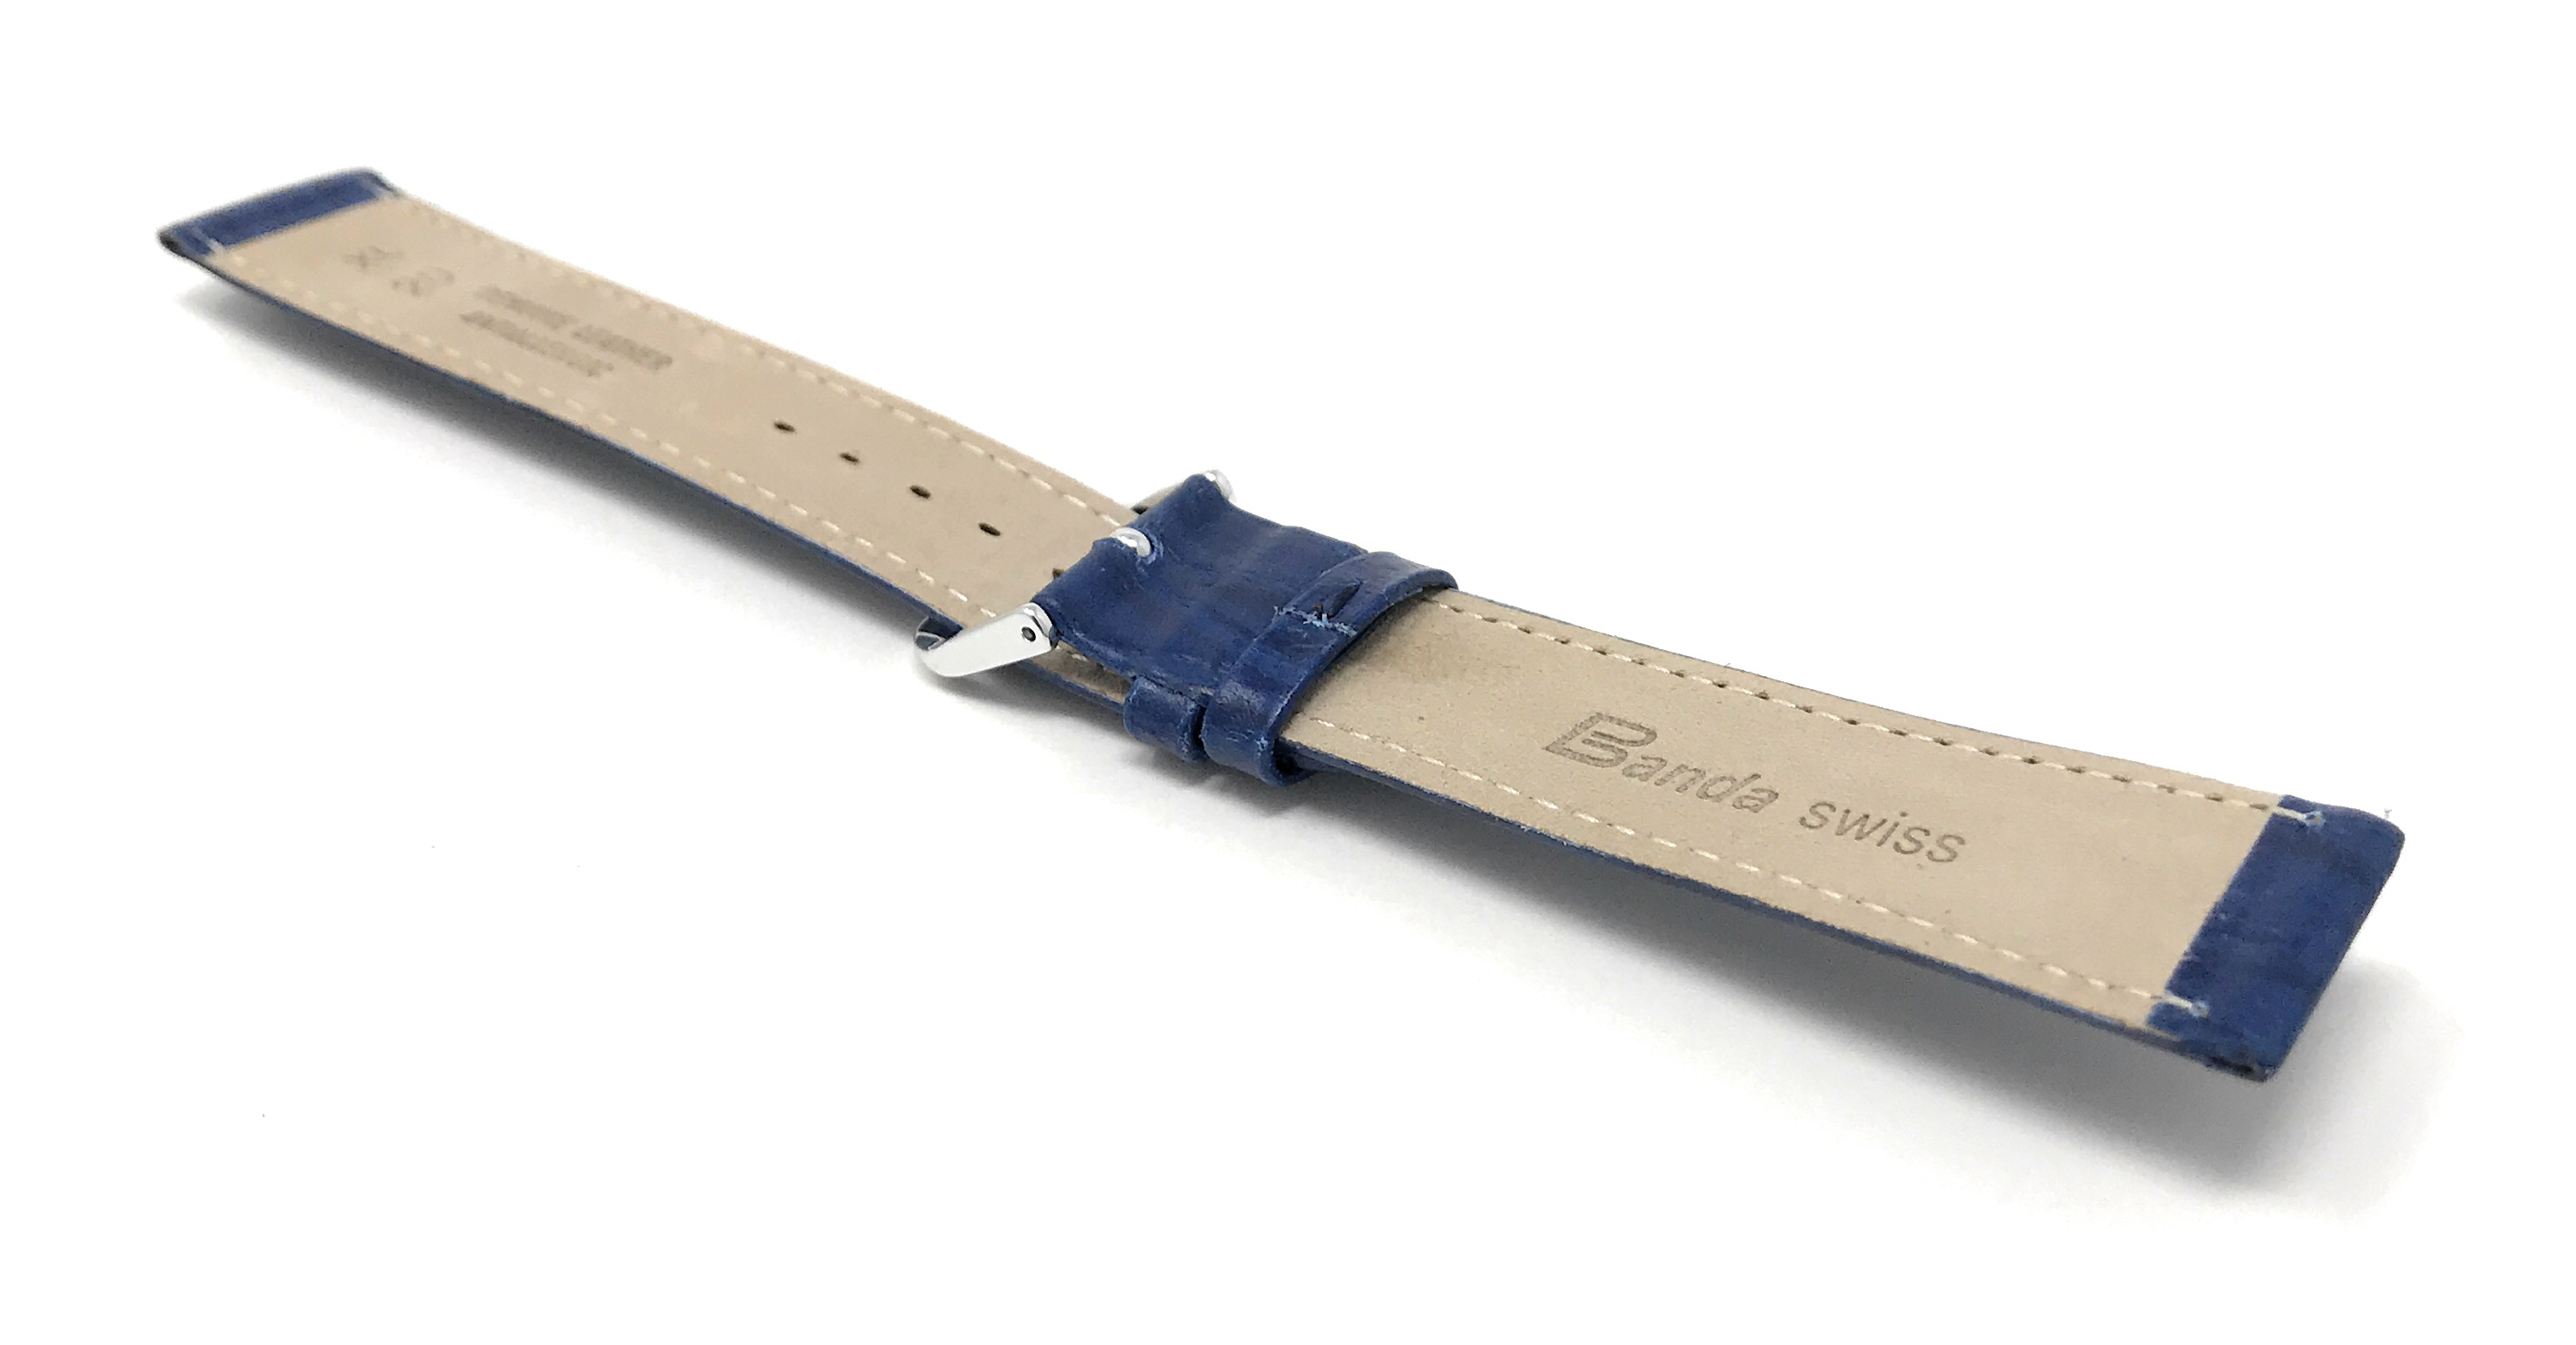 Bandini-Watch-Band-Leather-Strap-Semi-Glossy-10mm-20mm-Extra-Long-Also thumbnail 12